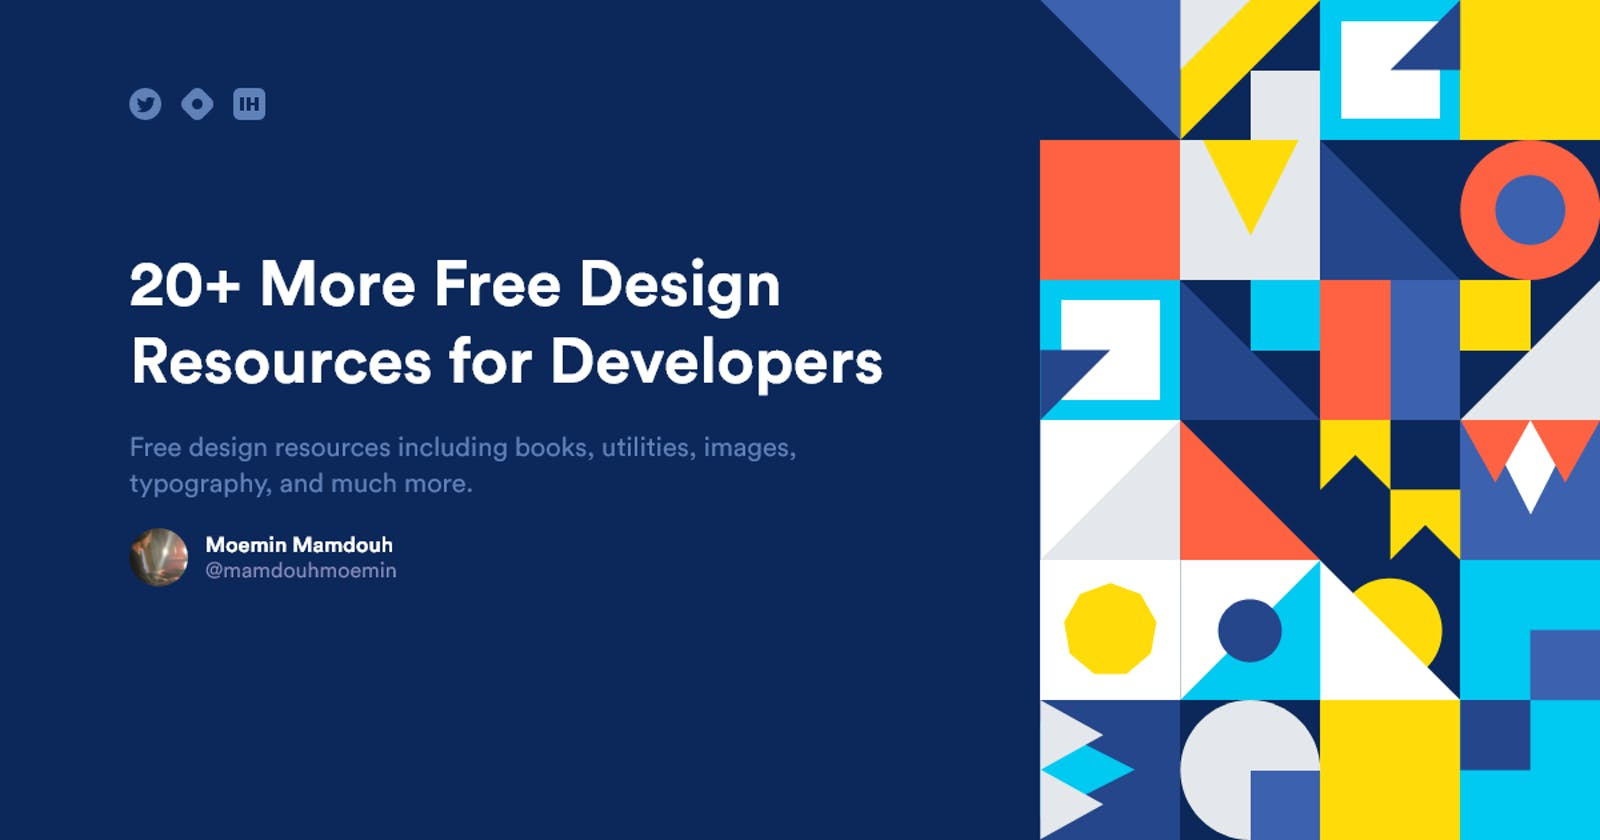 20+ More Free Design Resources for Developers